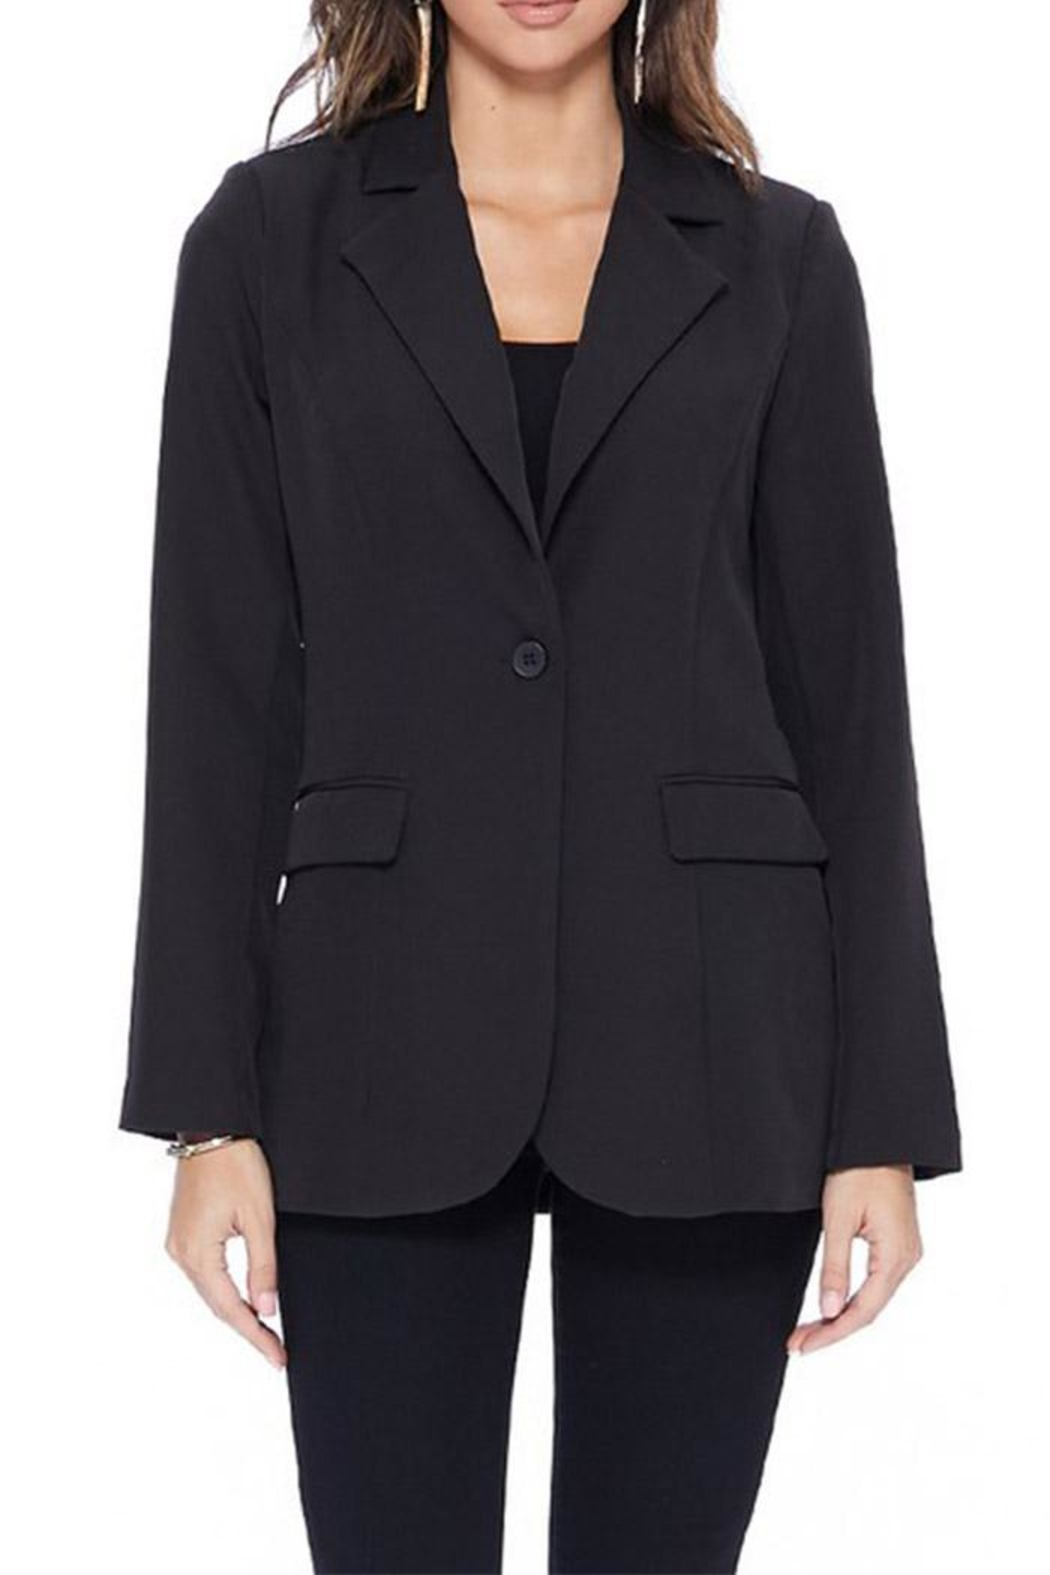 MICHEL Long Solid Blazer - Main Image